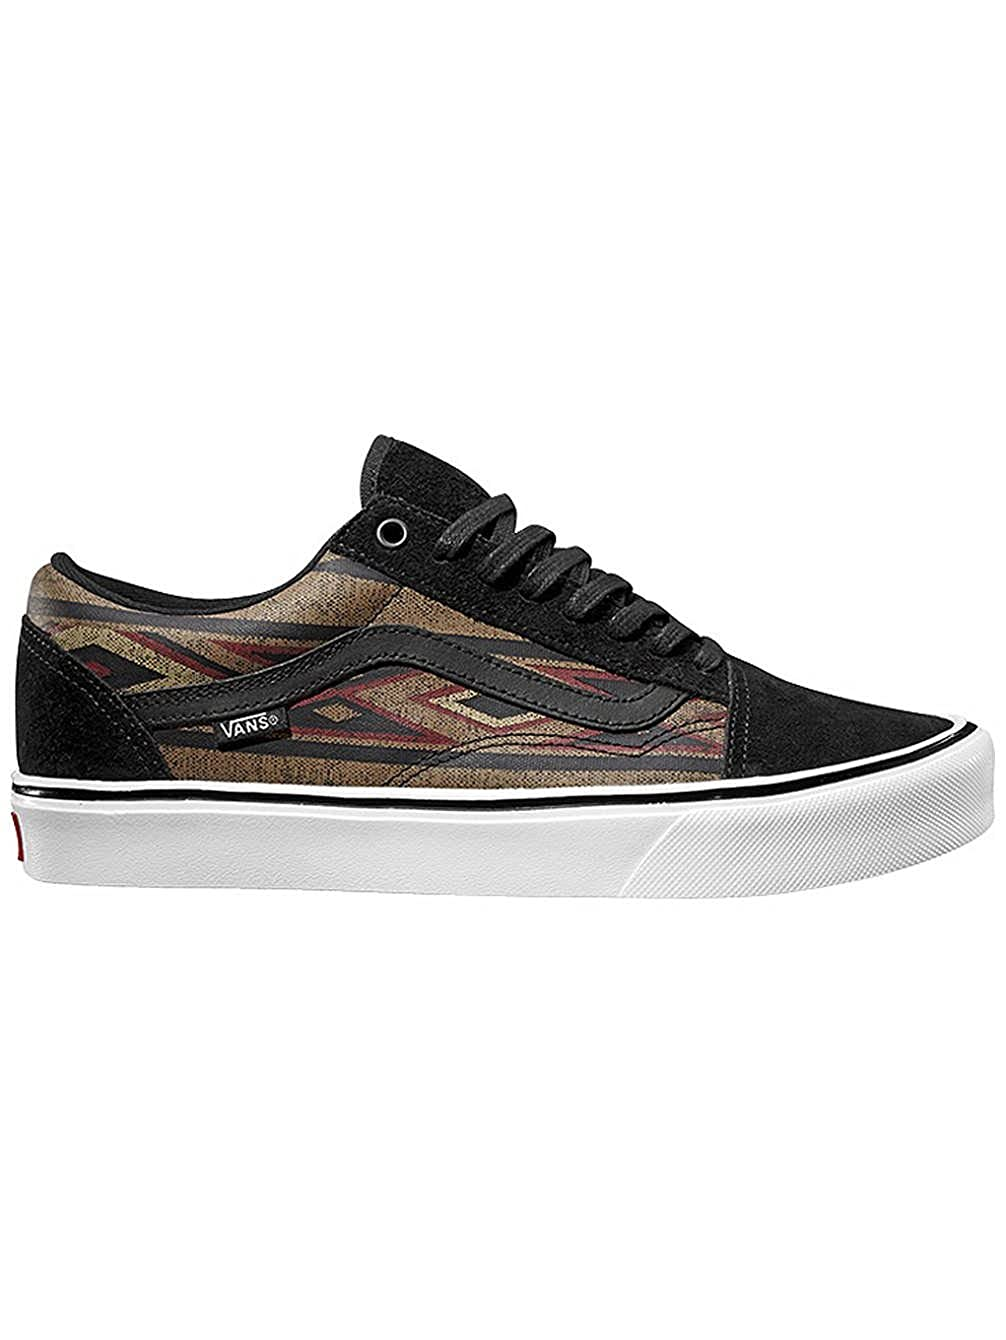 7b29748963 Vans Sneaker Men Old Skool Lite Sneakers  Amazon.co.uk  Shoes   Bags